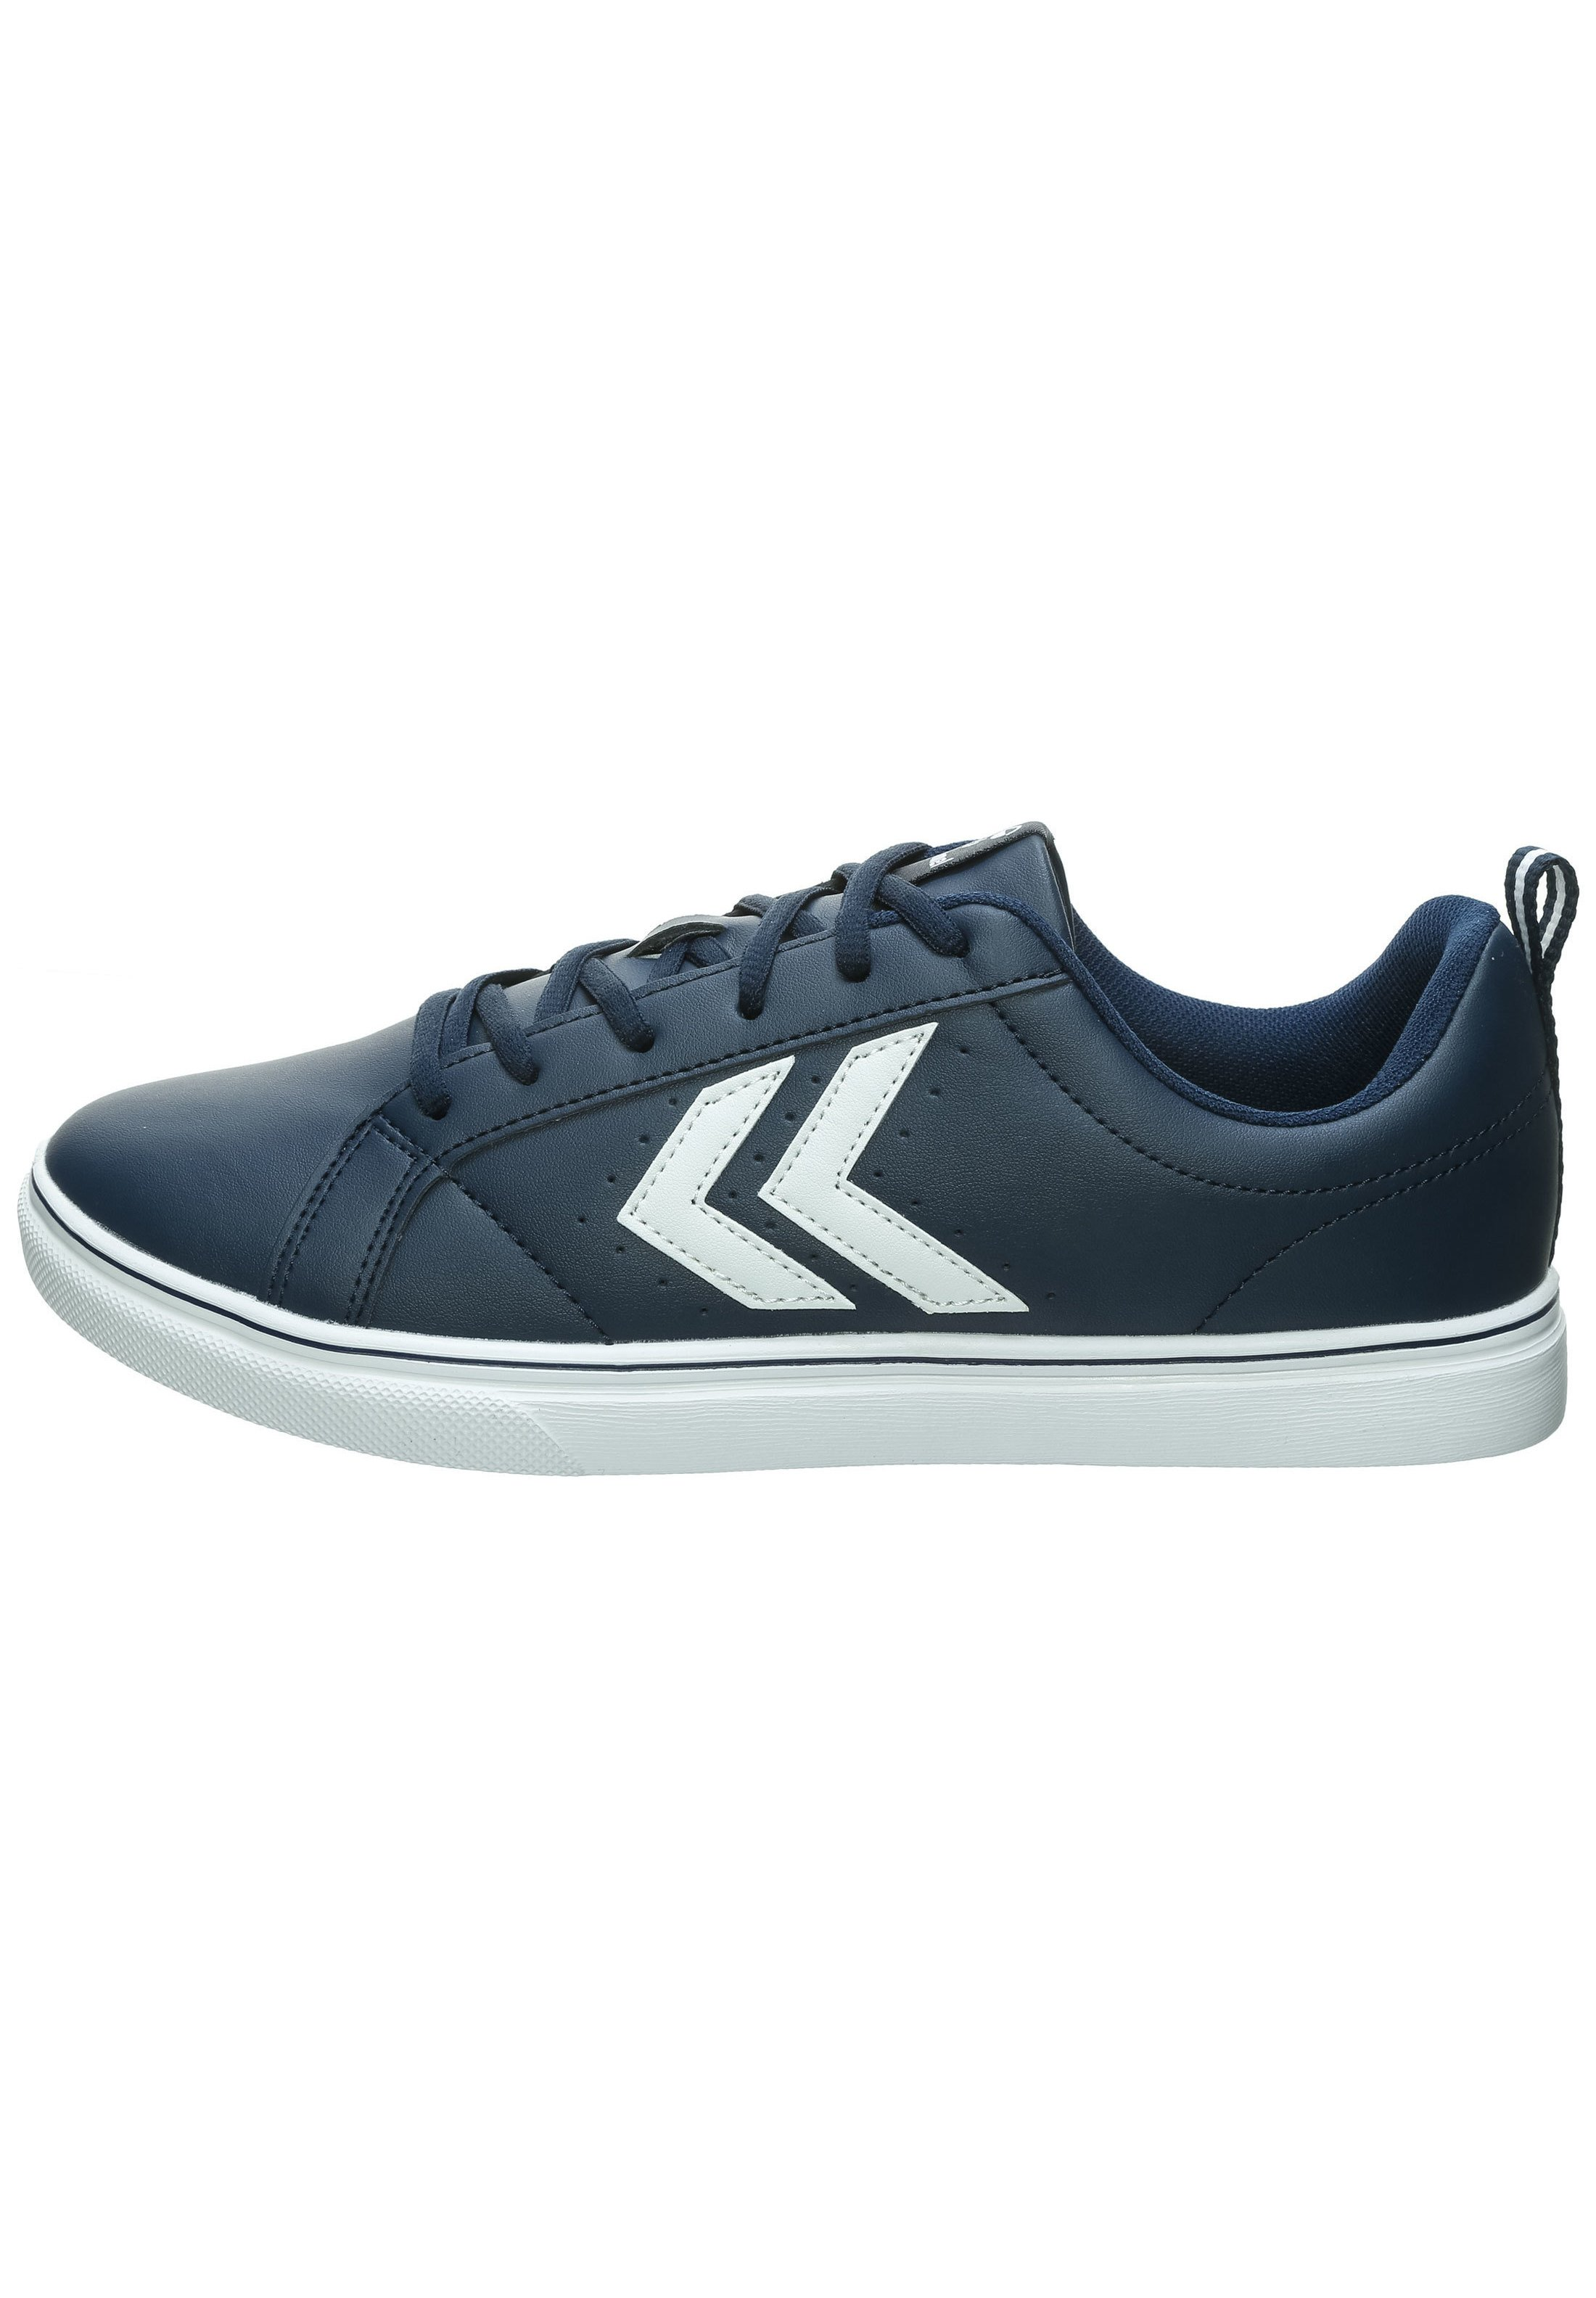 MAINZ Sneakers laag navy